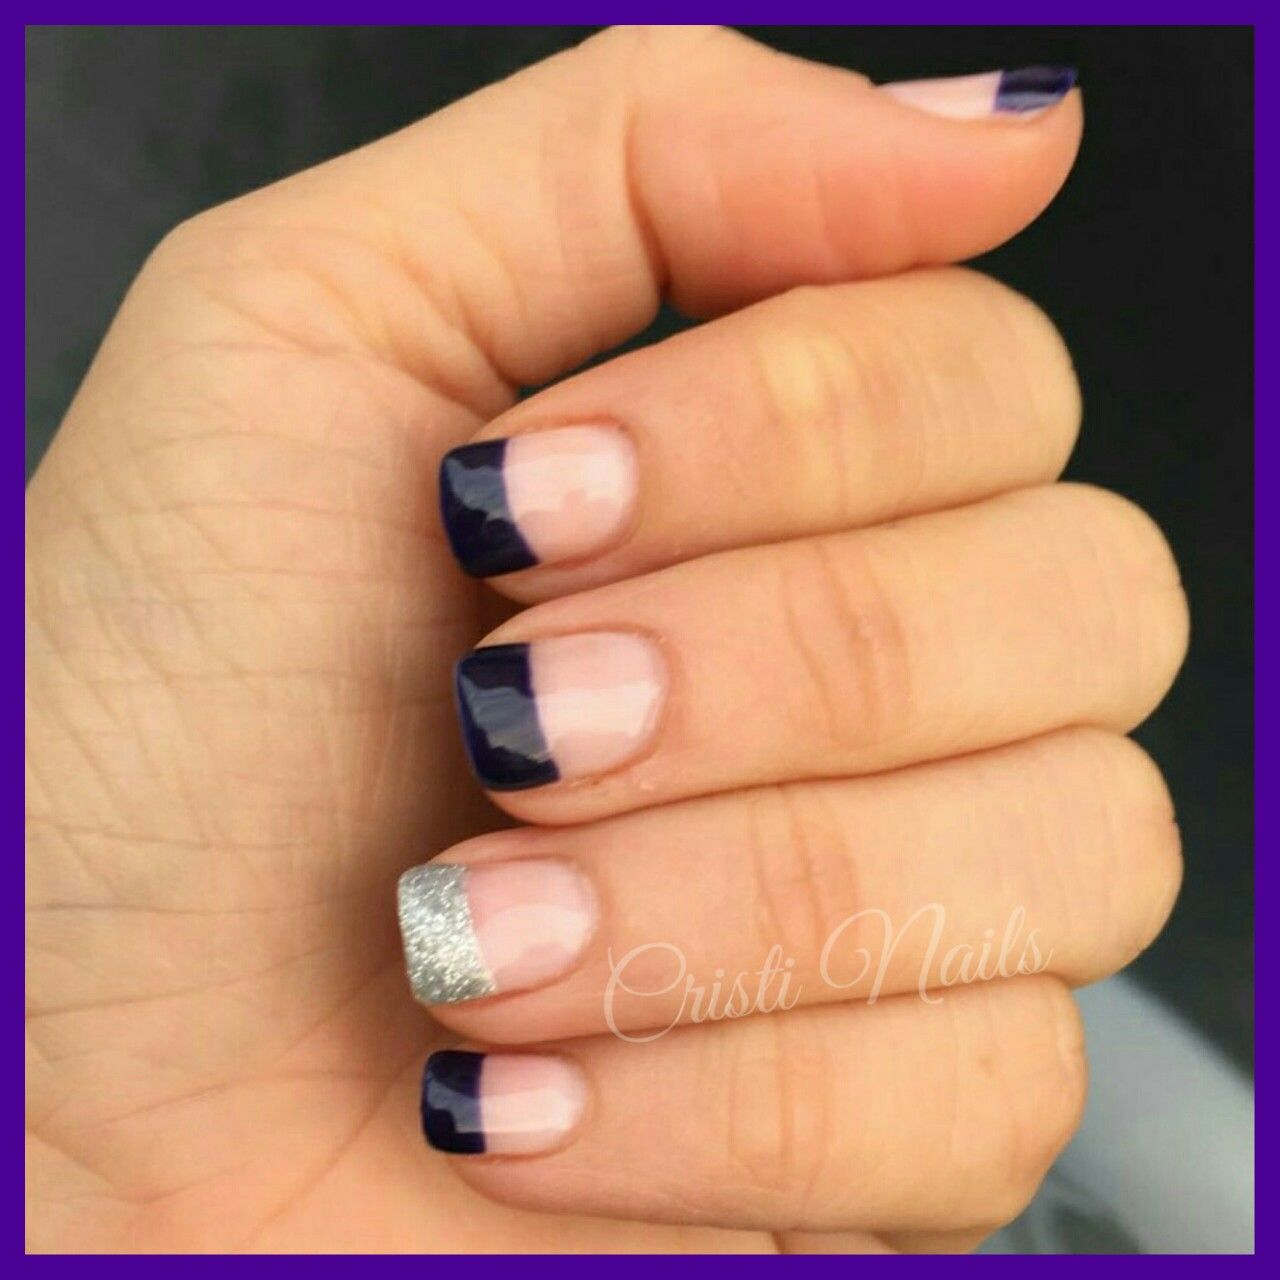 Nails Francesa morada y brillante